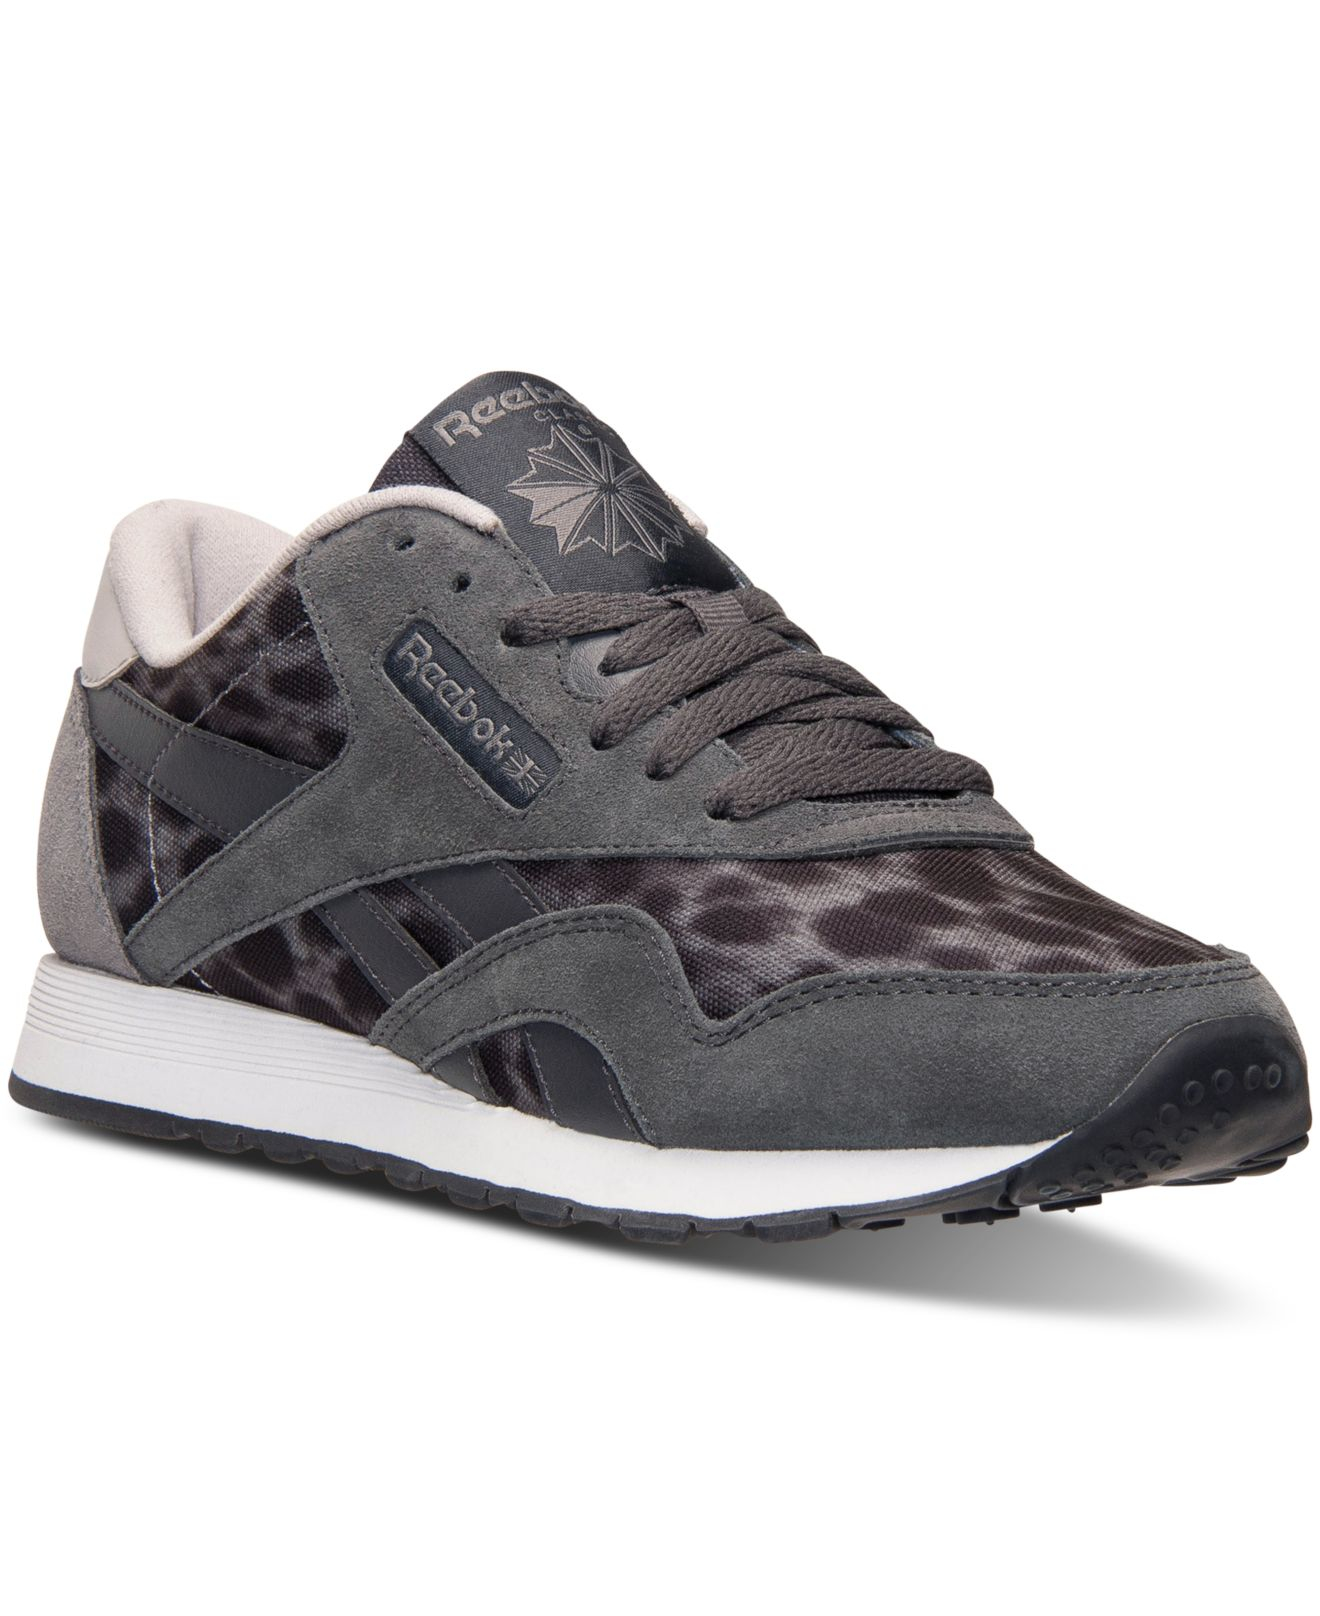 54df77a5a1b2 Lyst - Reebok Women s Classic Nylon Wild Casual Sneakers From Finish ...